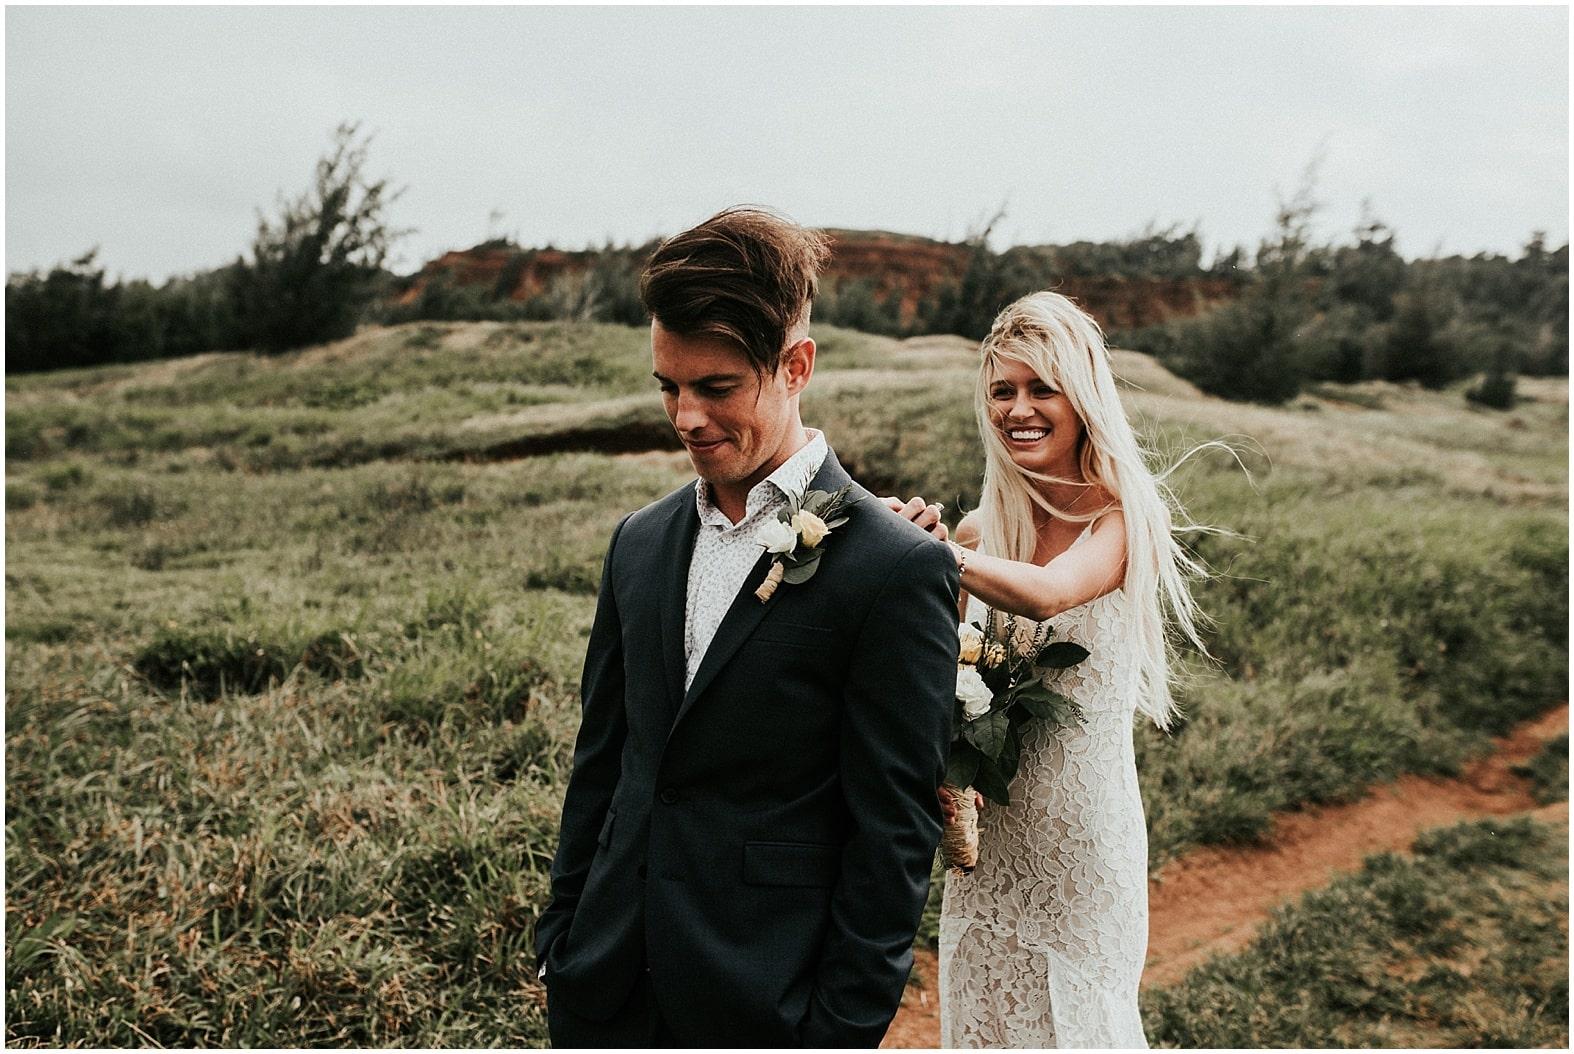 Cienna and Dallin ~ Wailuku, Hawaii